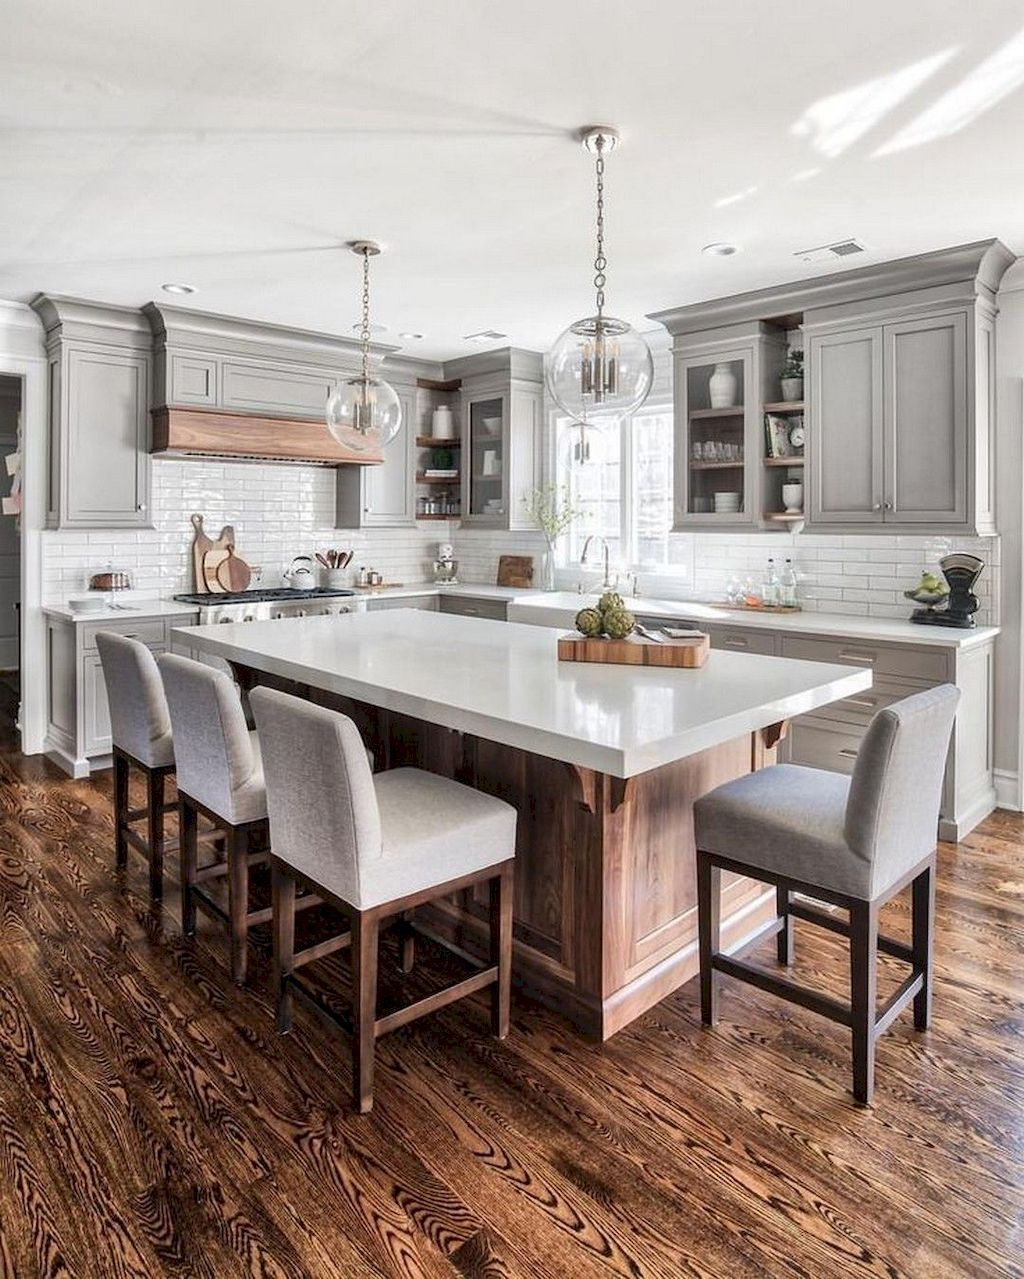 35 Awesome Gray Kitchen Cabinet Design Ideas Kitchen Design Countertops Grey Kitchen Designs Kitchen Design